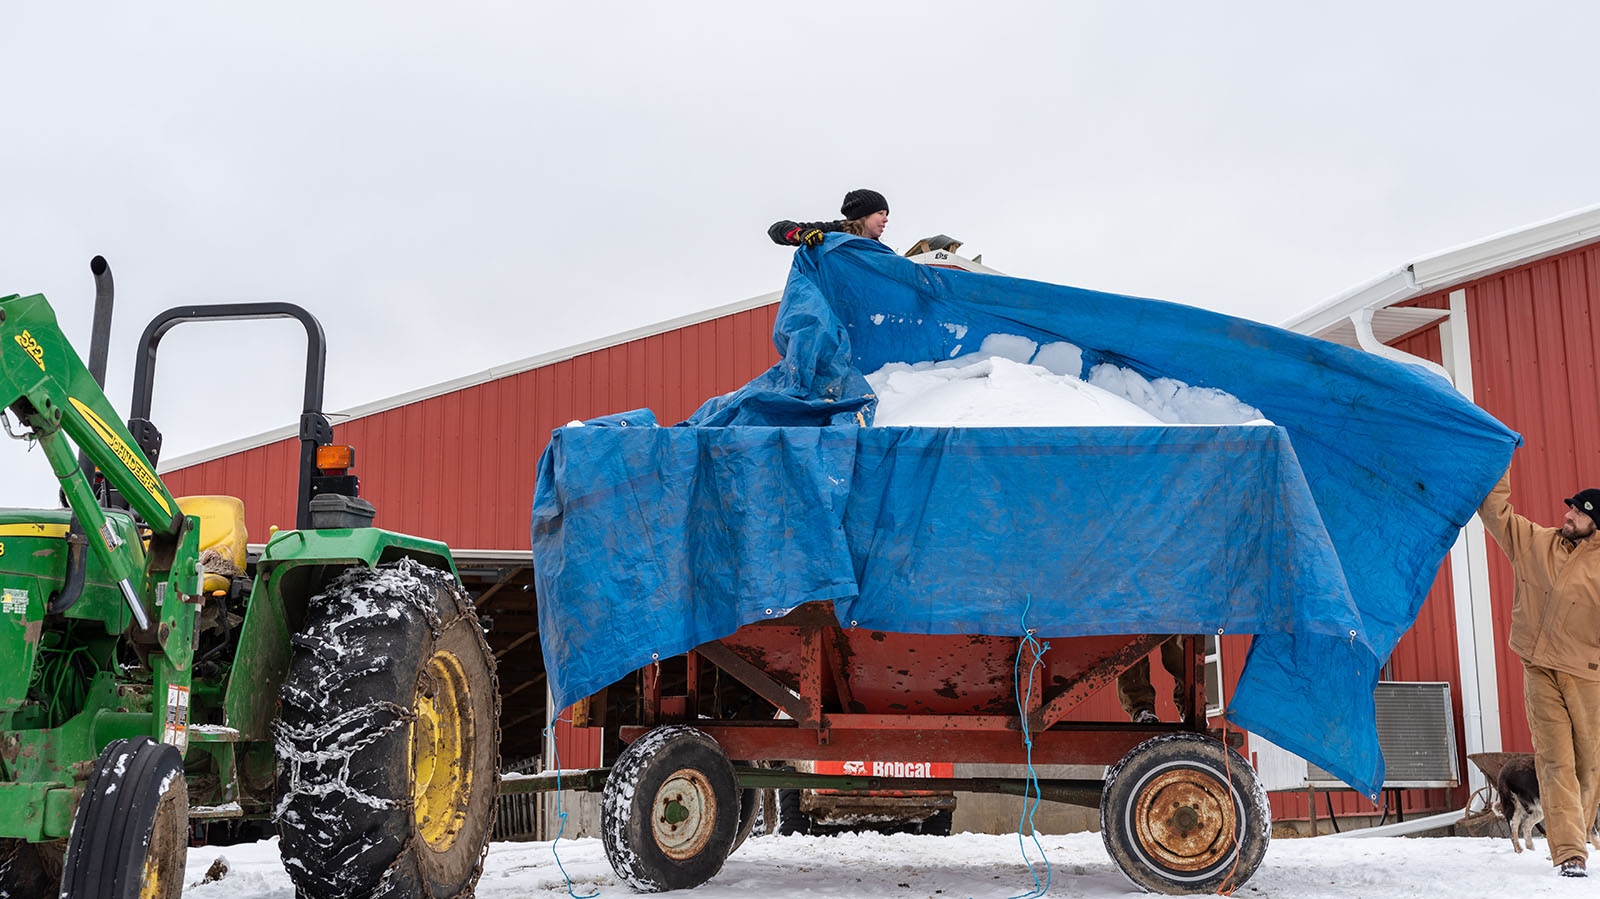 Hauling a snow-covered tarp off a bin of bedding.